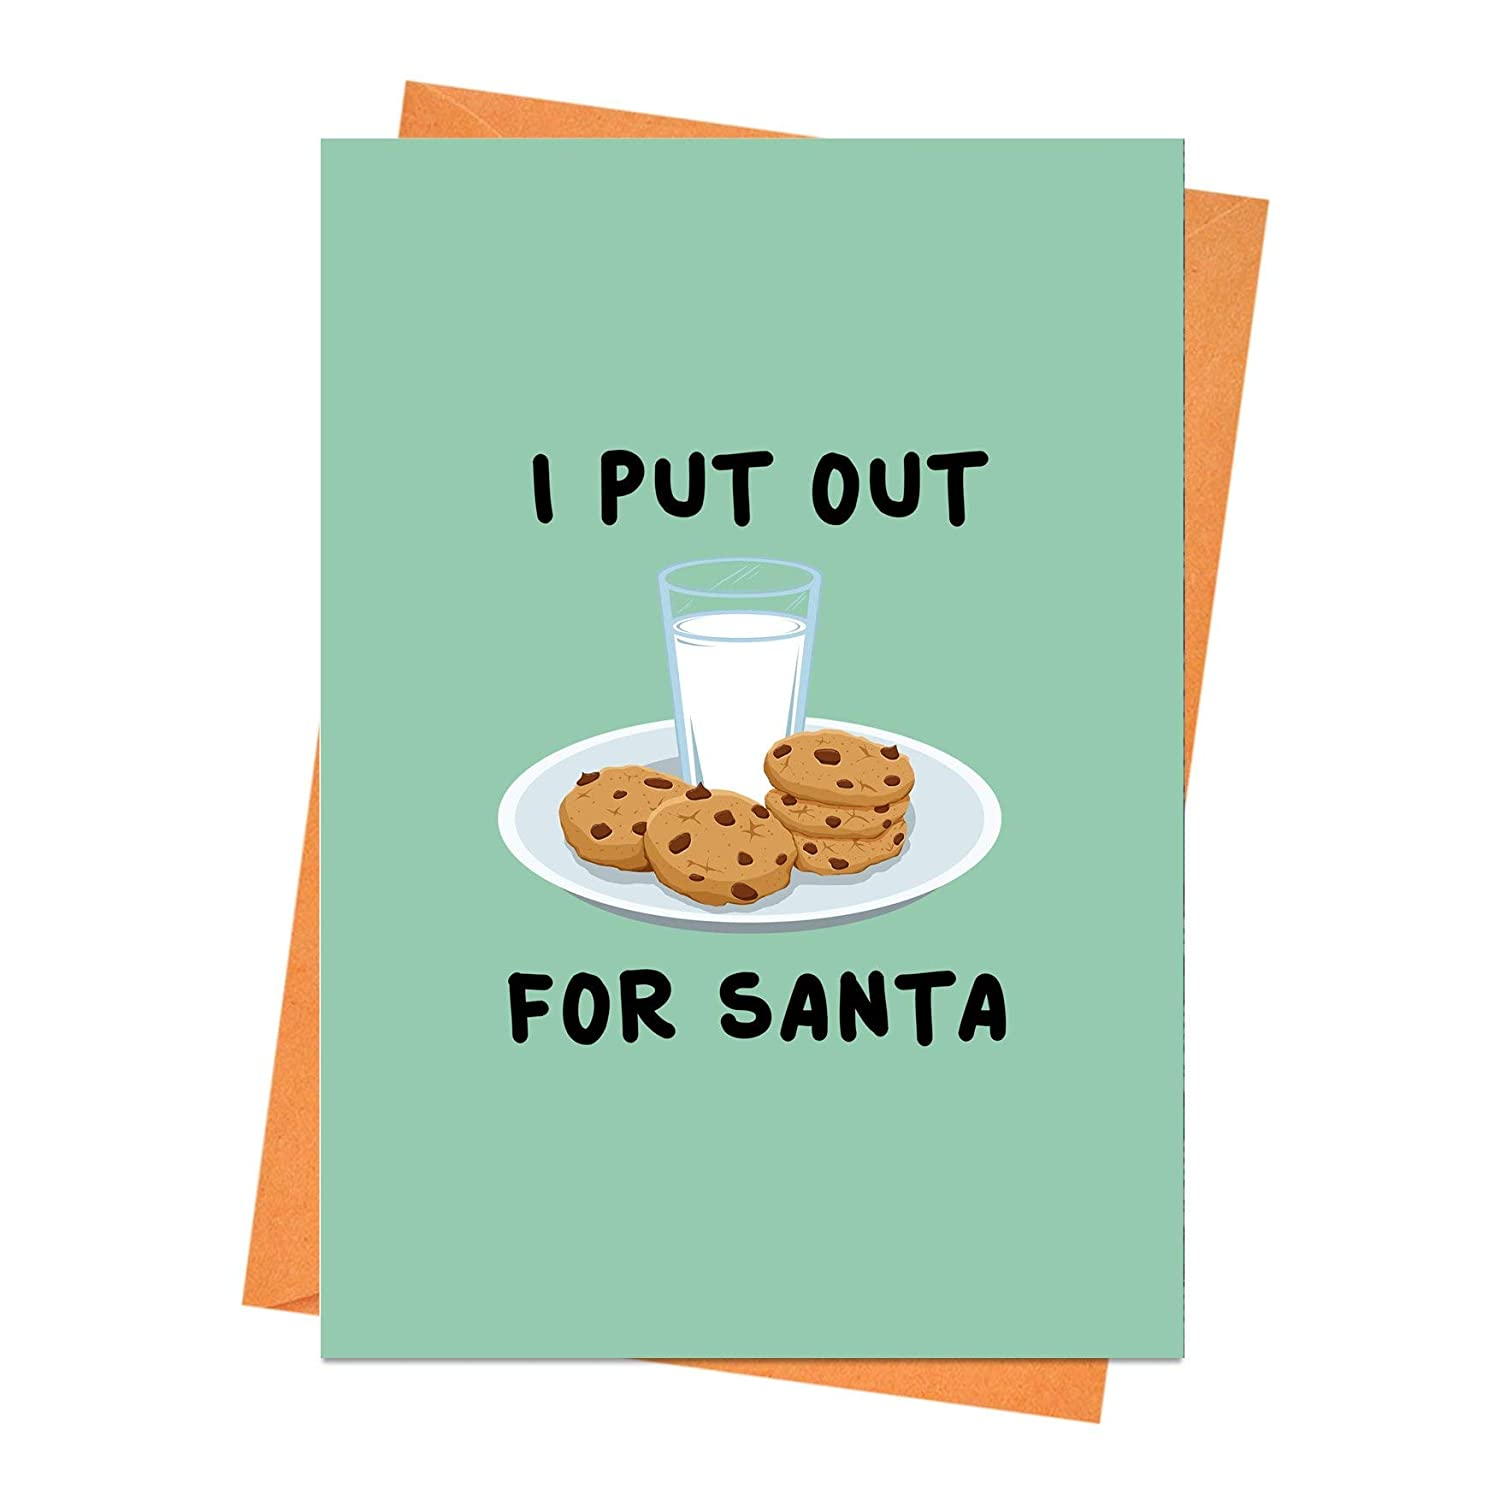 Funny Christmas Card, Funny Holiday Card, Naughty Christmas Card, Rude Christmas Card, Xmas Card, I Put Out For Santa Greeting Card